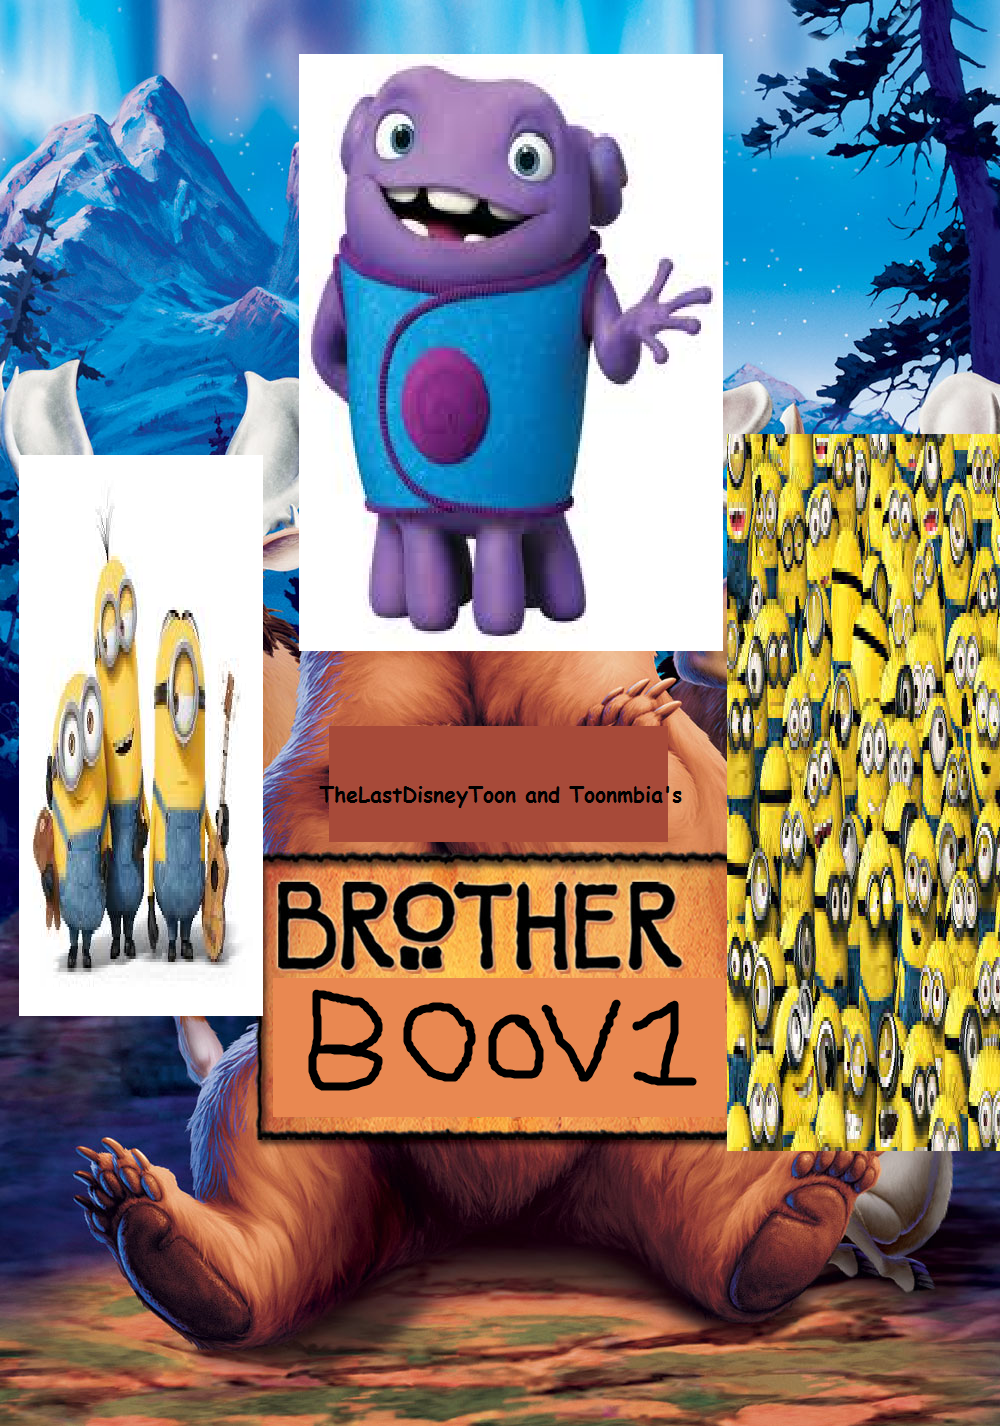 Brother Boov (TheLastDisneyToon and Toonmbia Style)